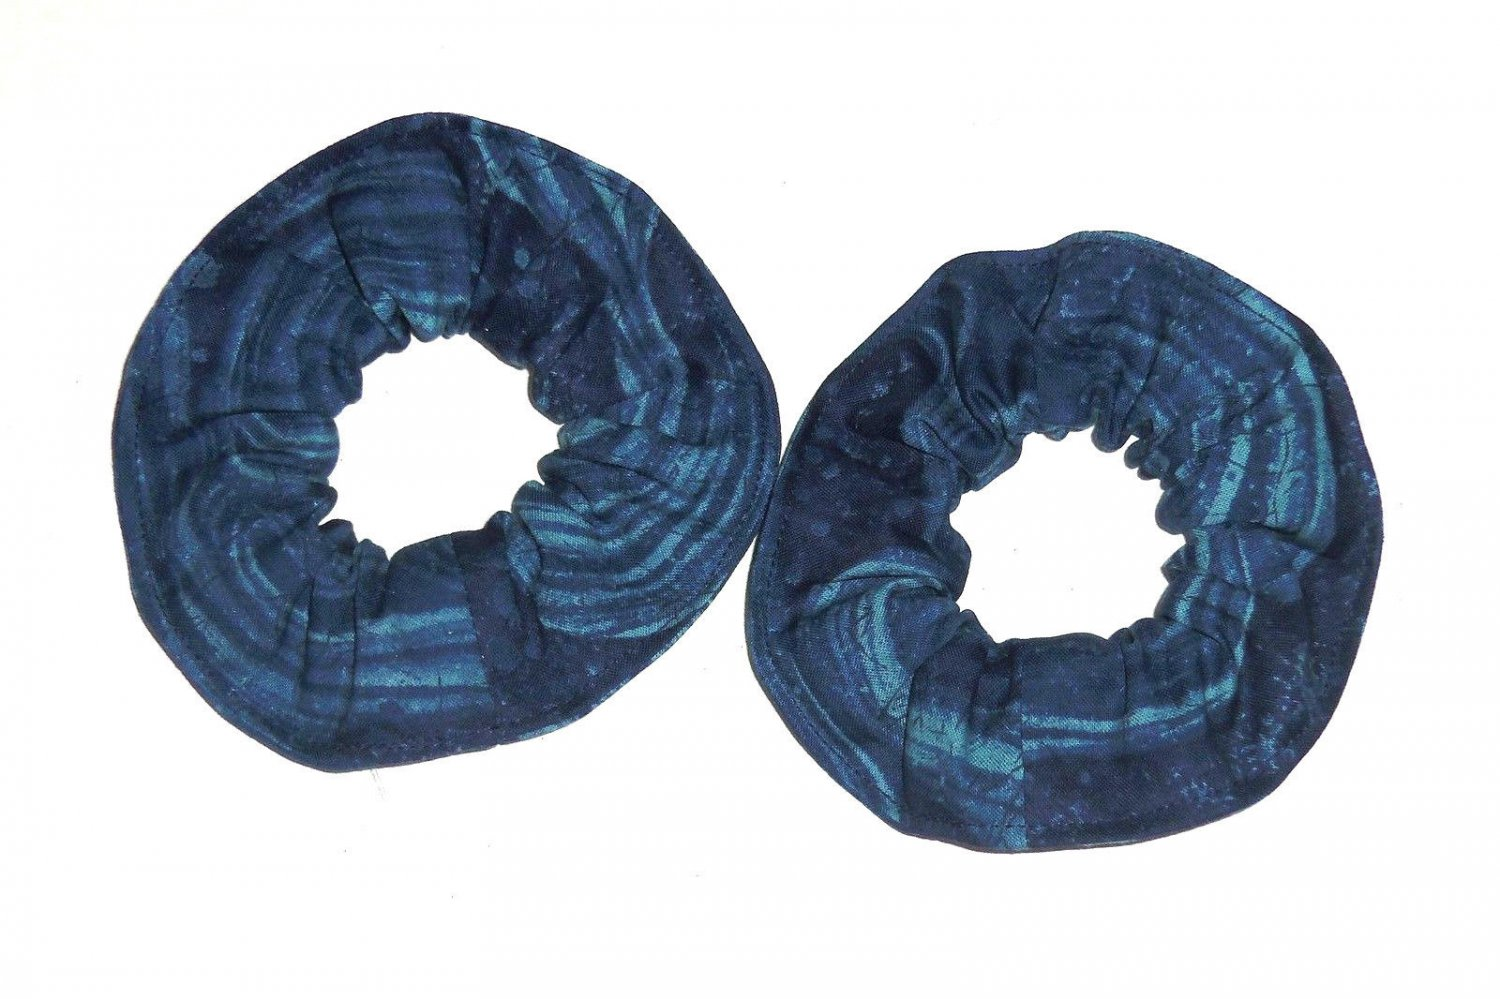 Coral Reef Ocean Blue Fabric Mini Hair ScrunchieTie Scrunchies by Sherry Lot of 2 New